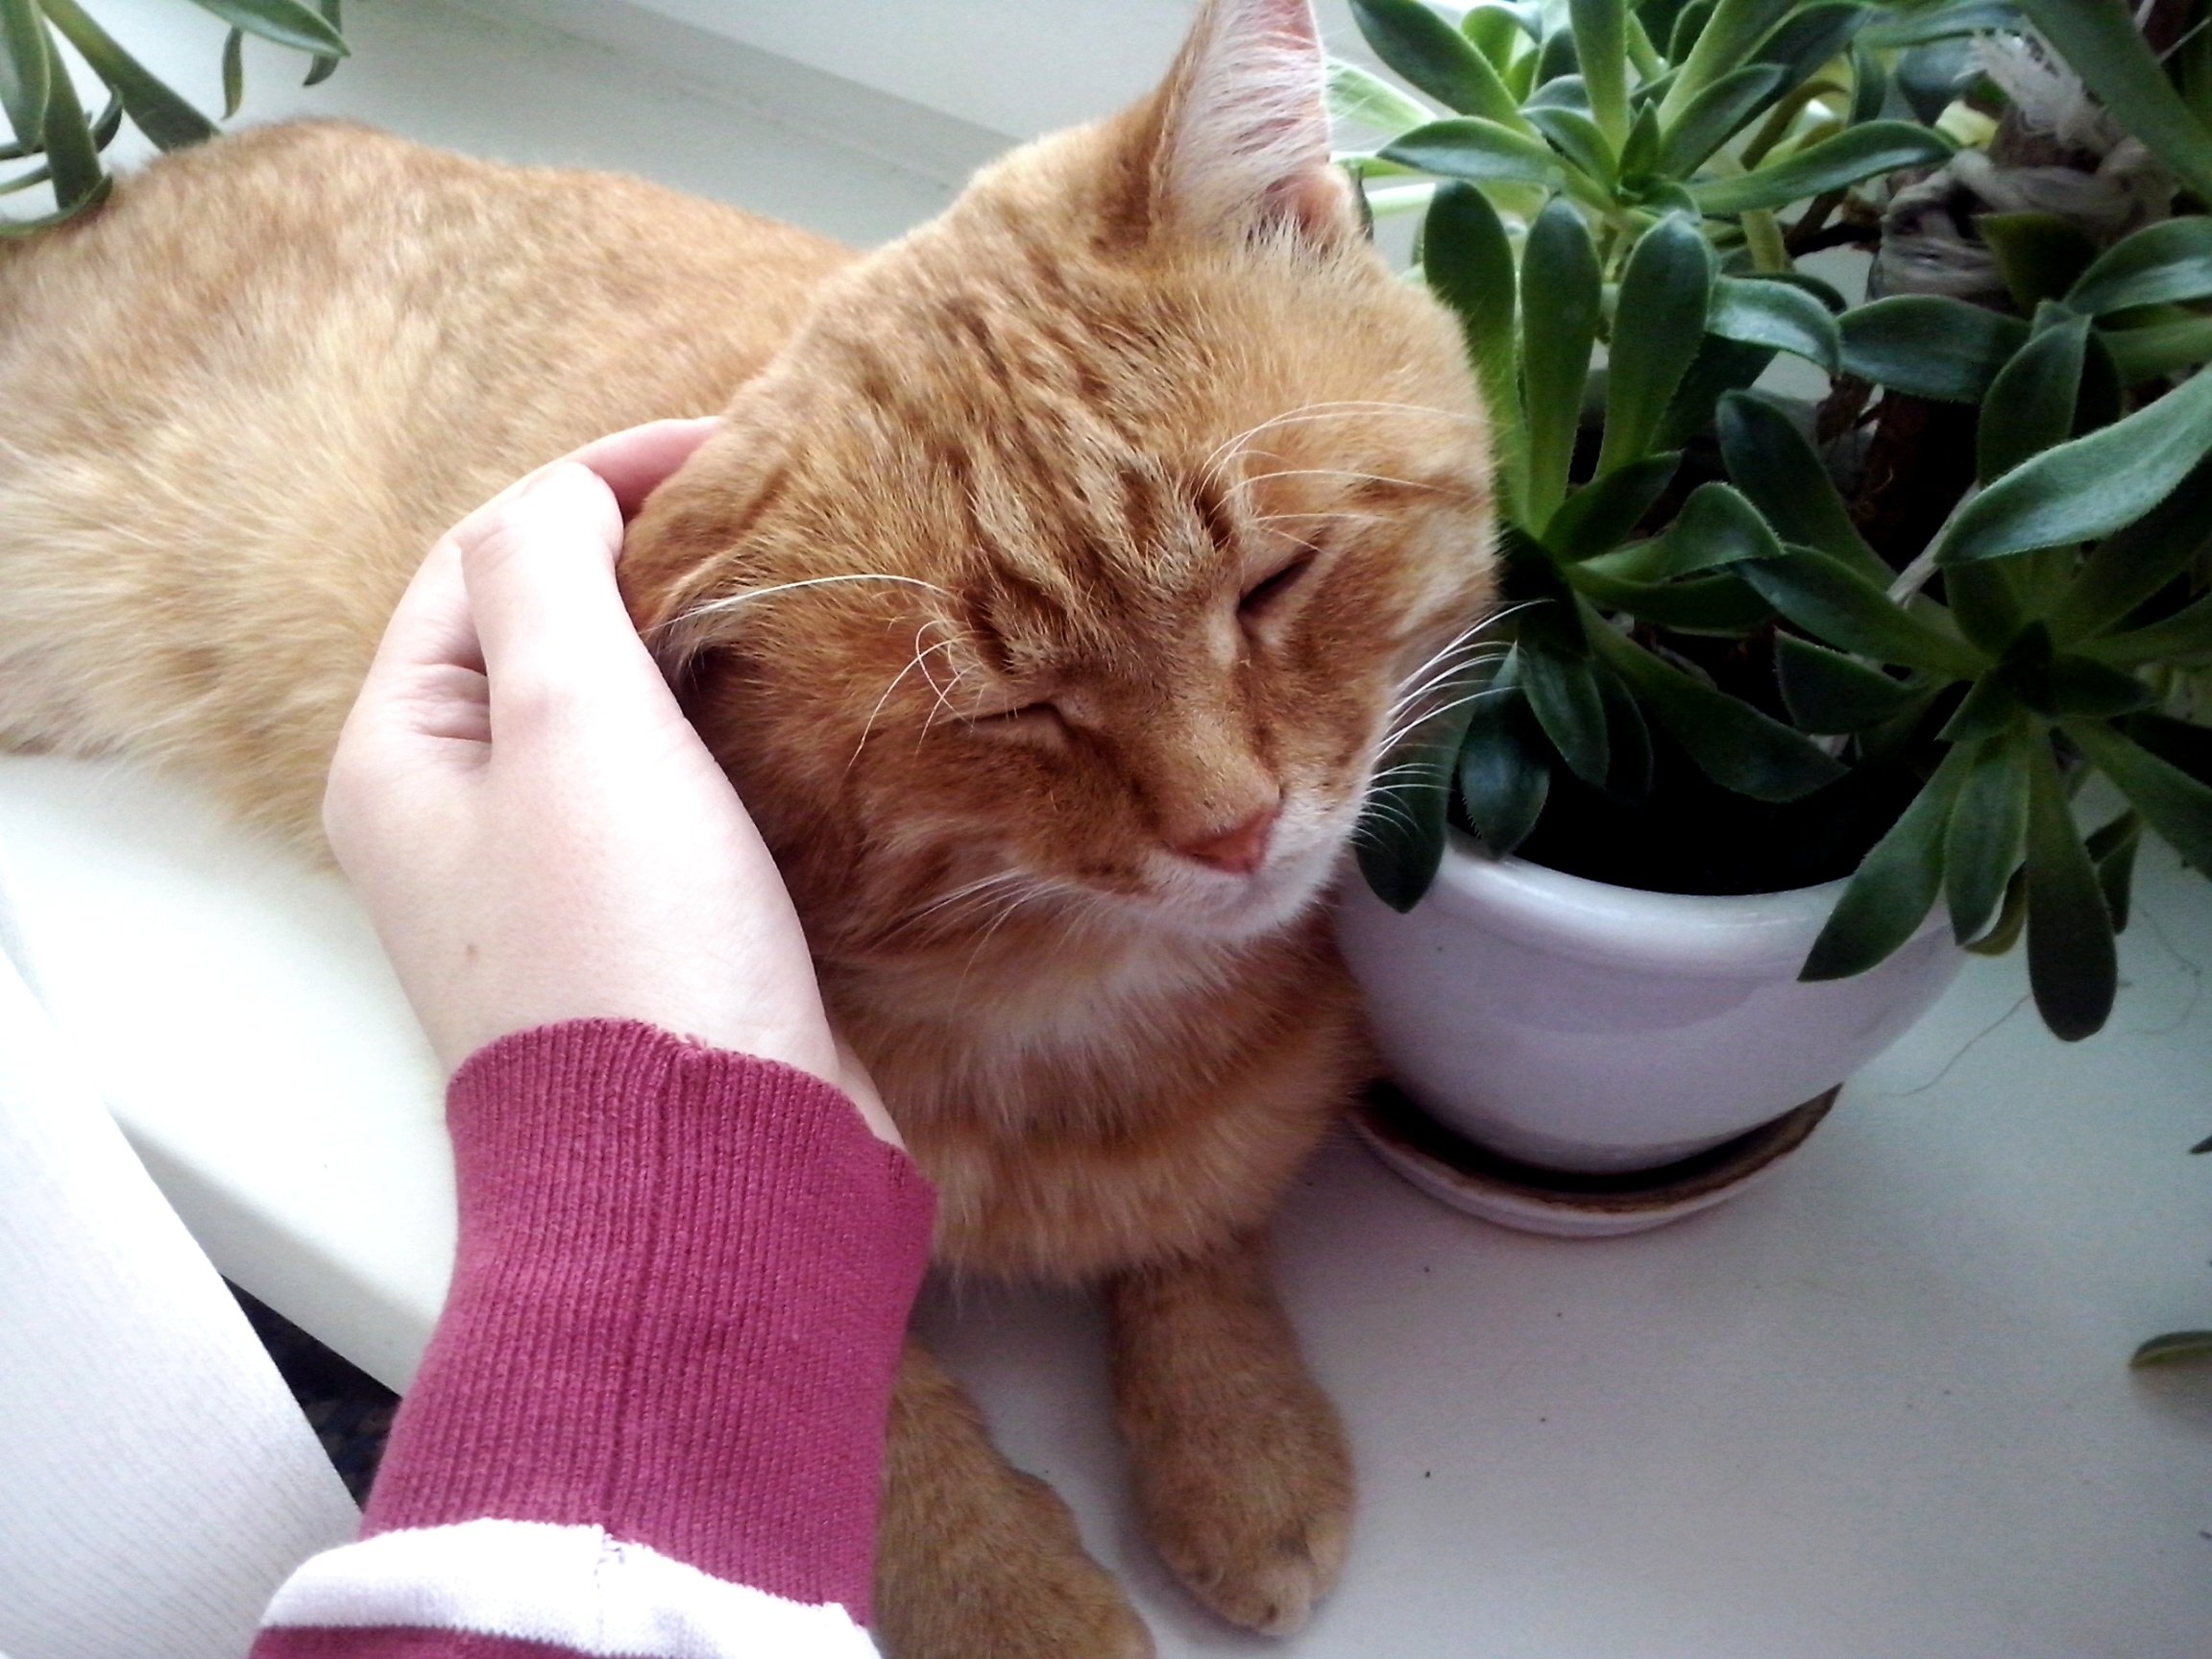 Therapy cats can be life-changing for people with mental illness